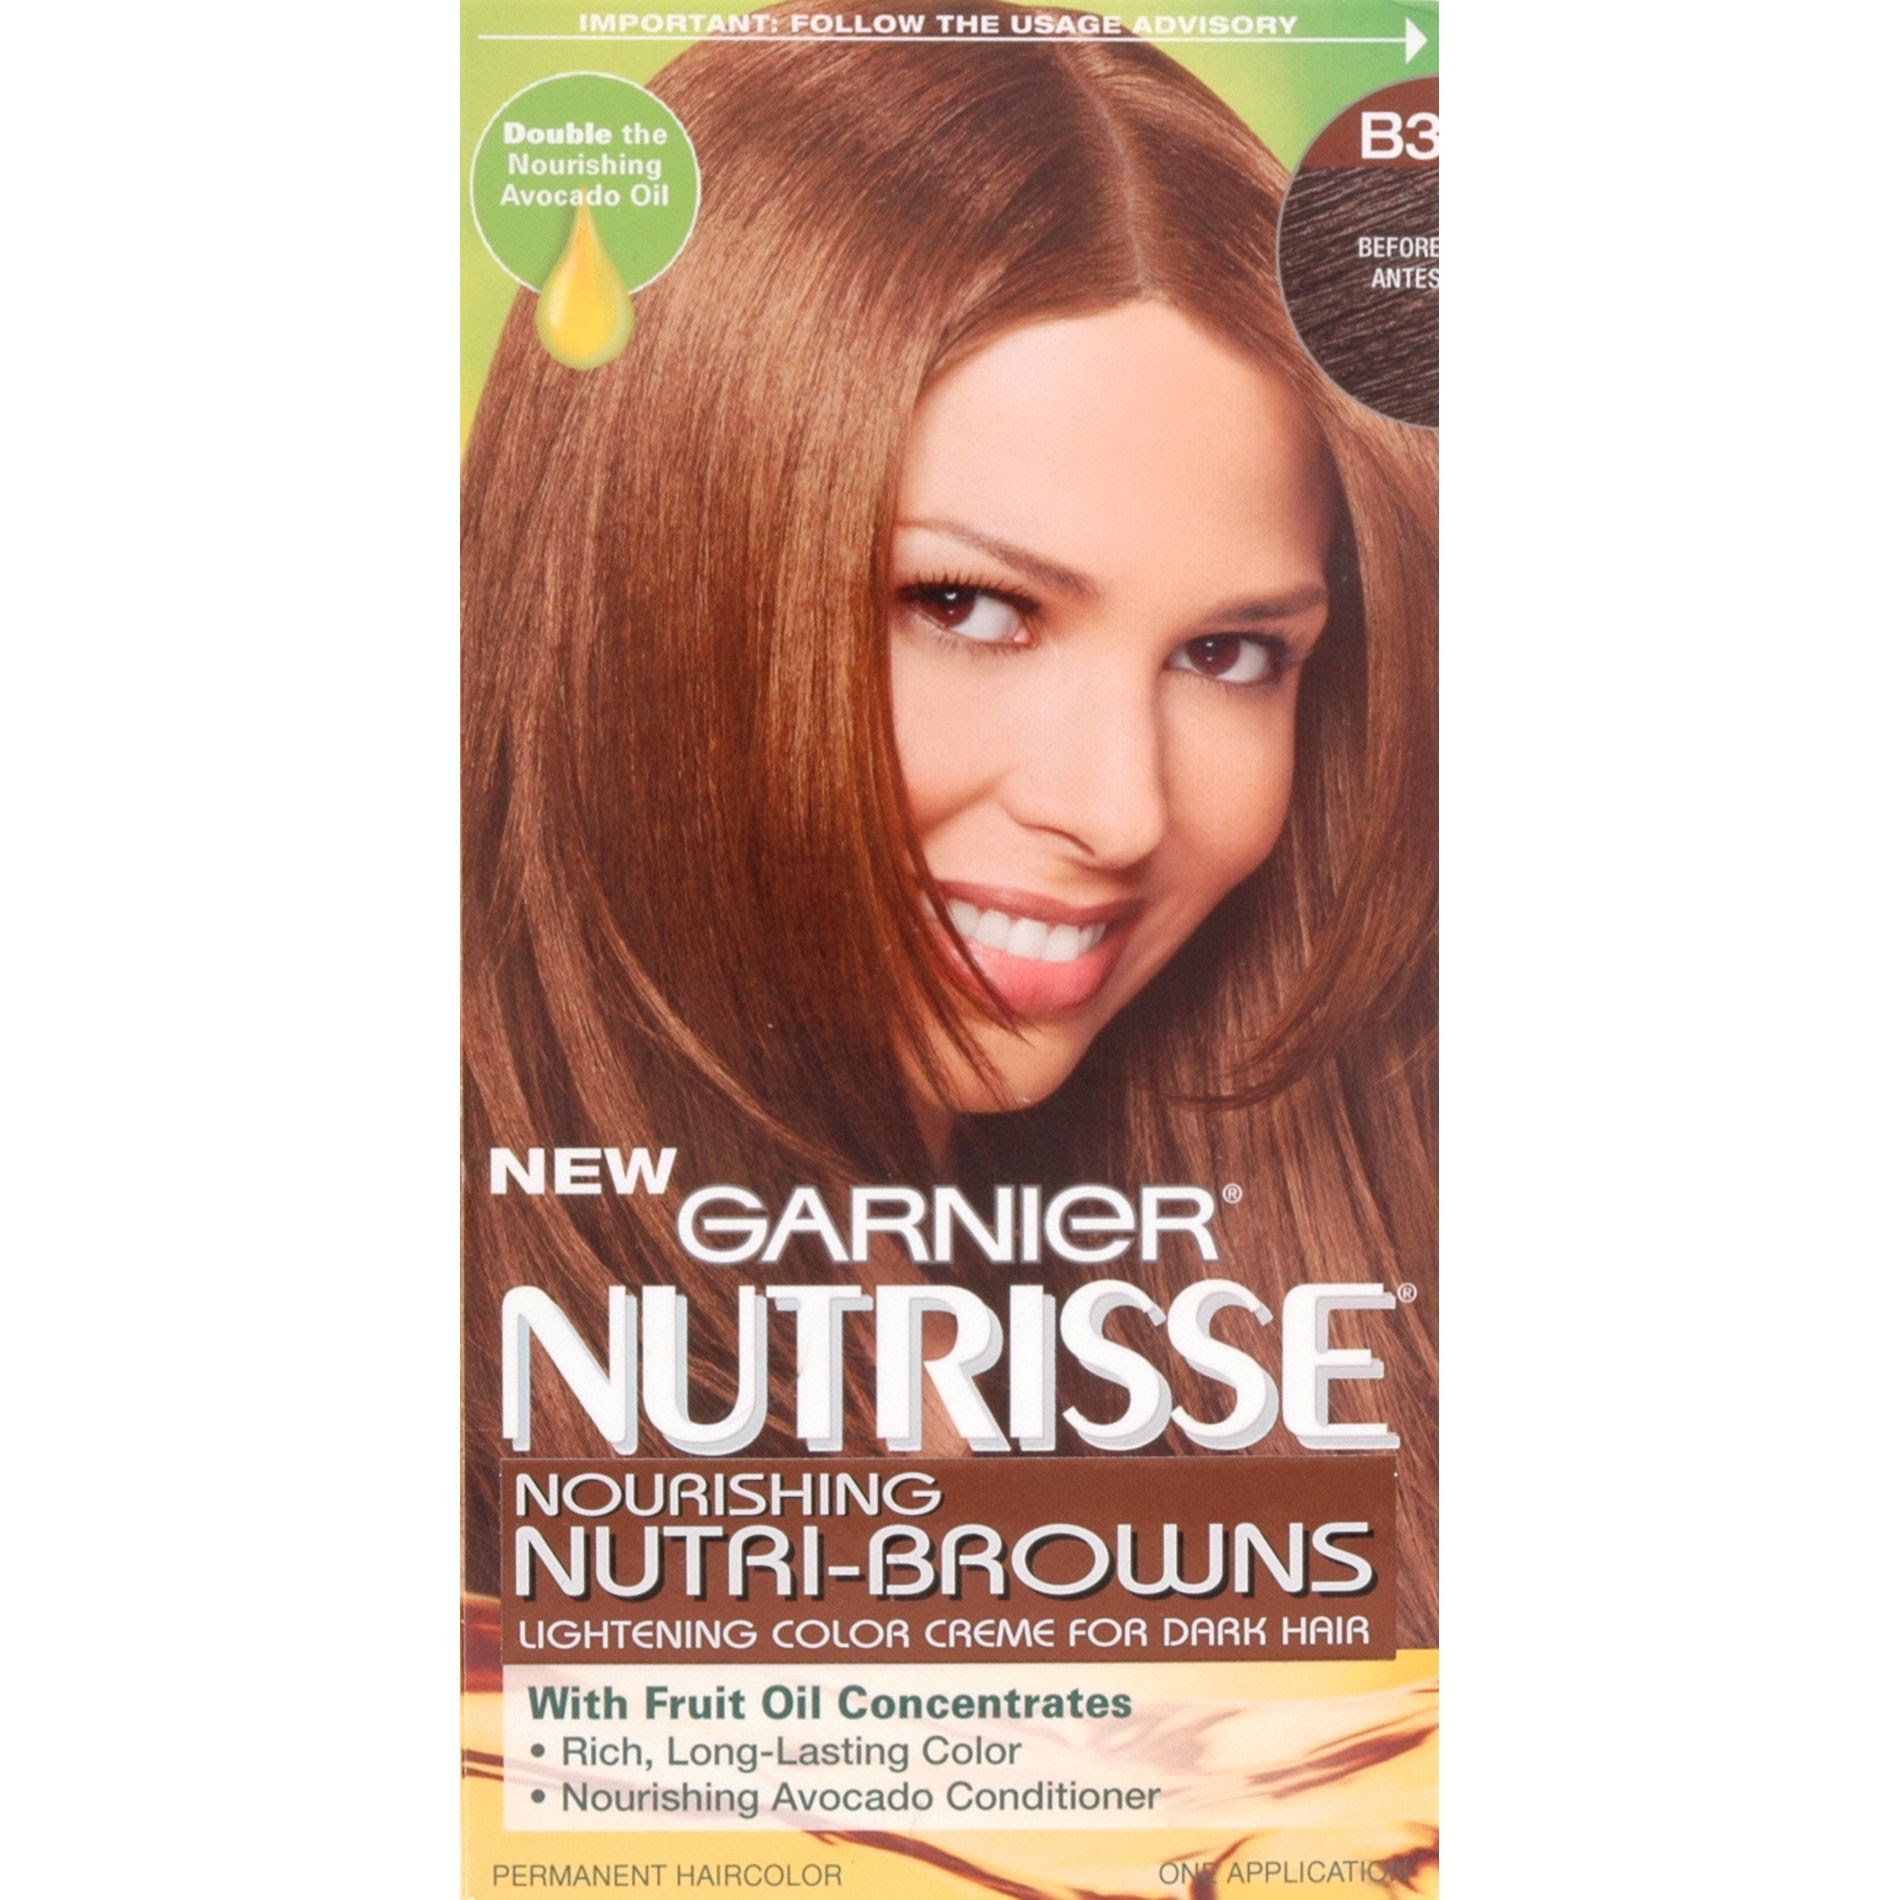 Garnier Nutrisse, NutriBrowns, Permanent Hair Color 1 Kit  Beauty  Hair Care  Hair Coloring